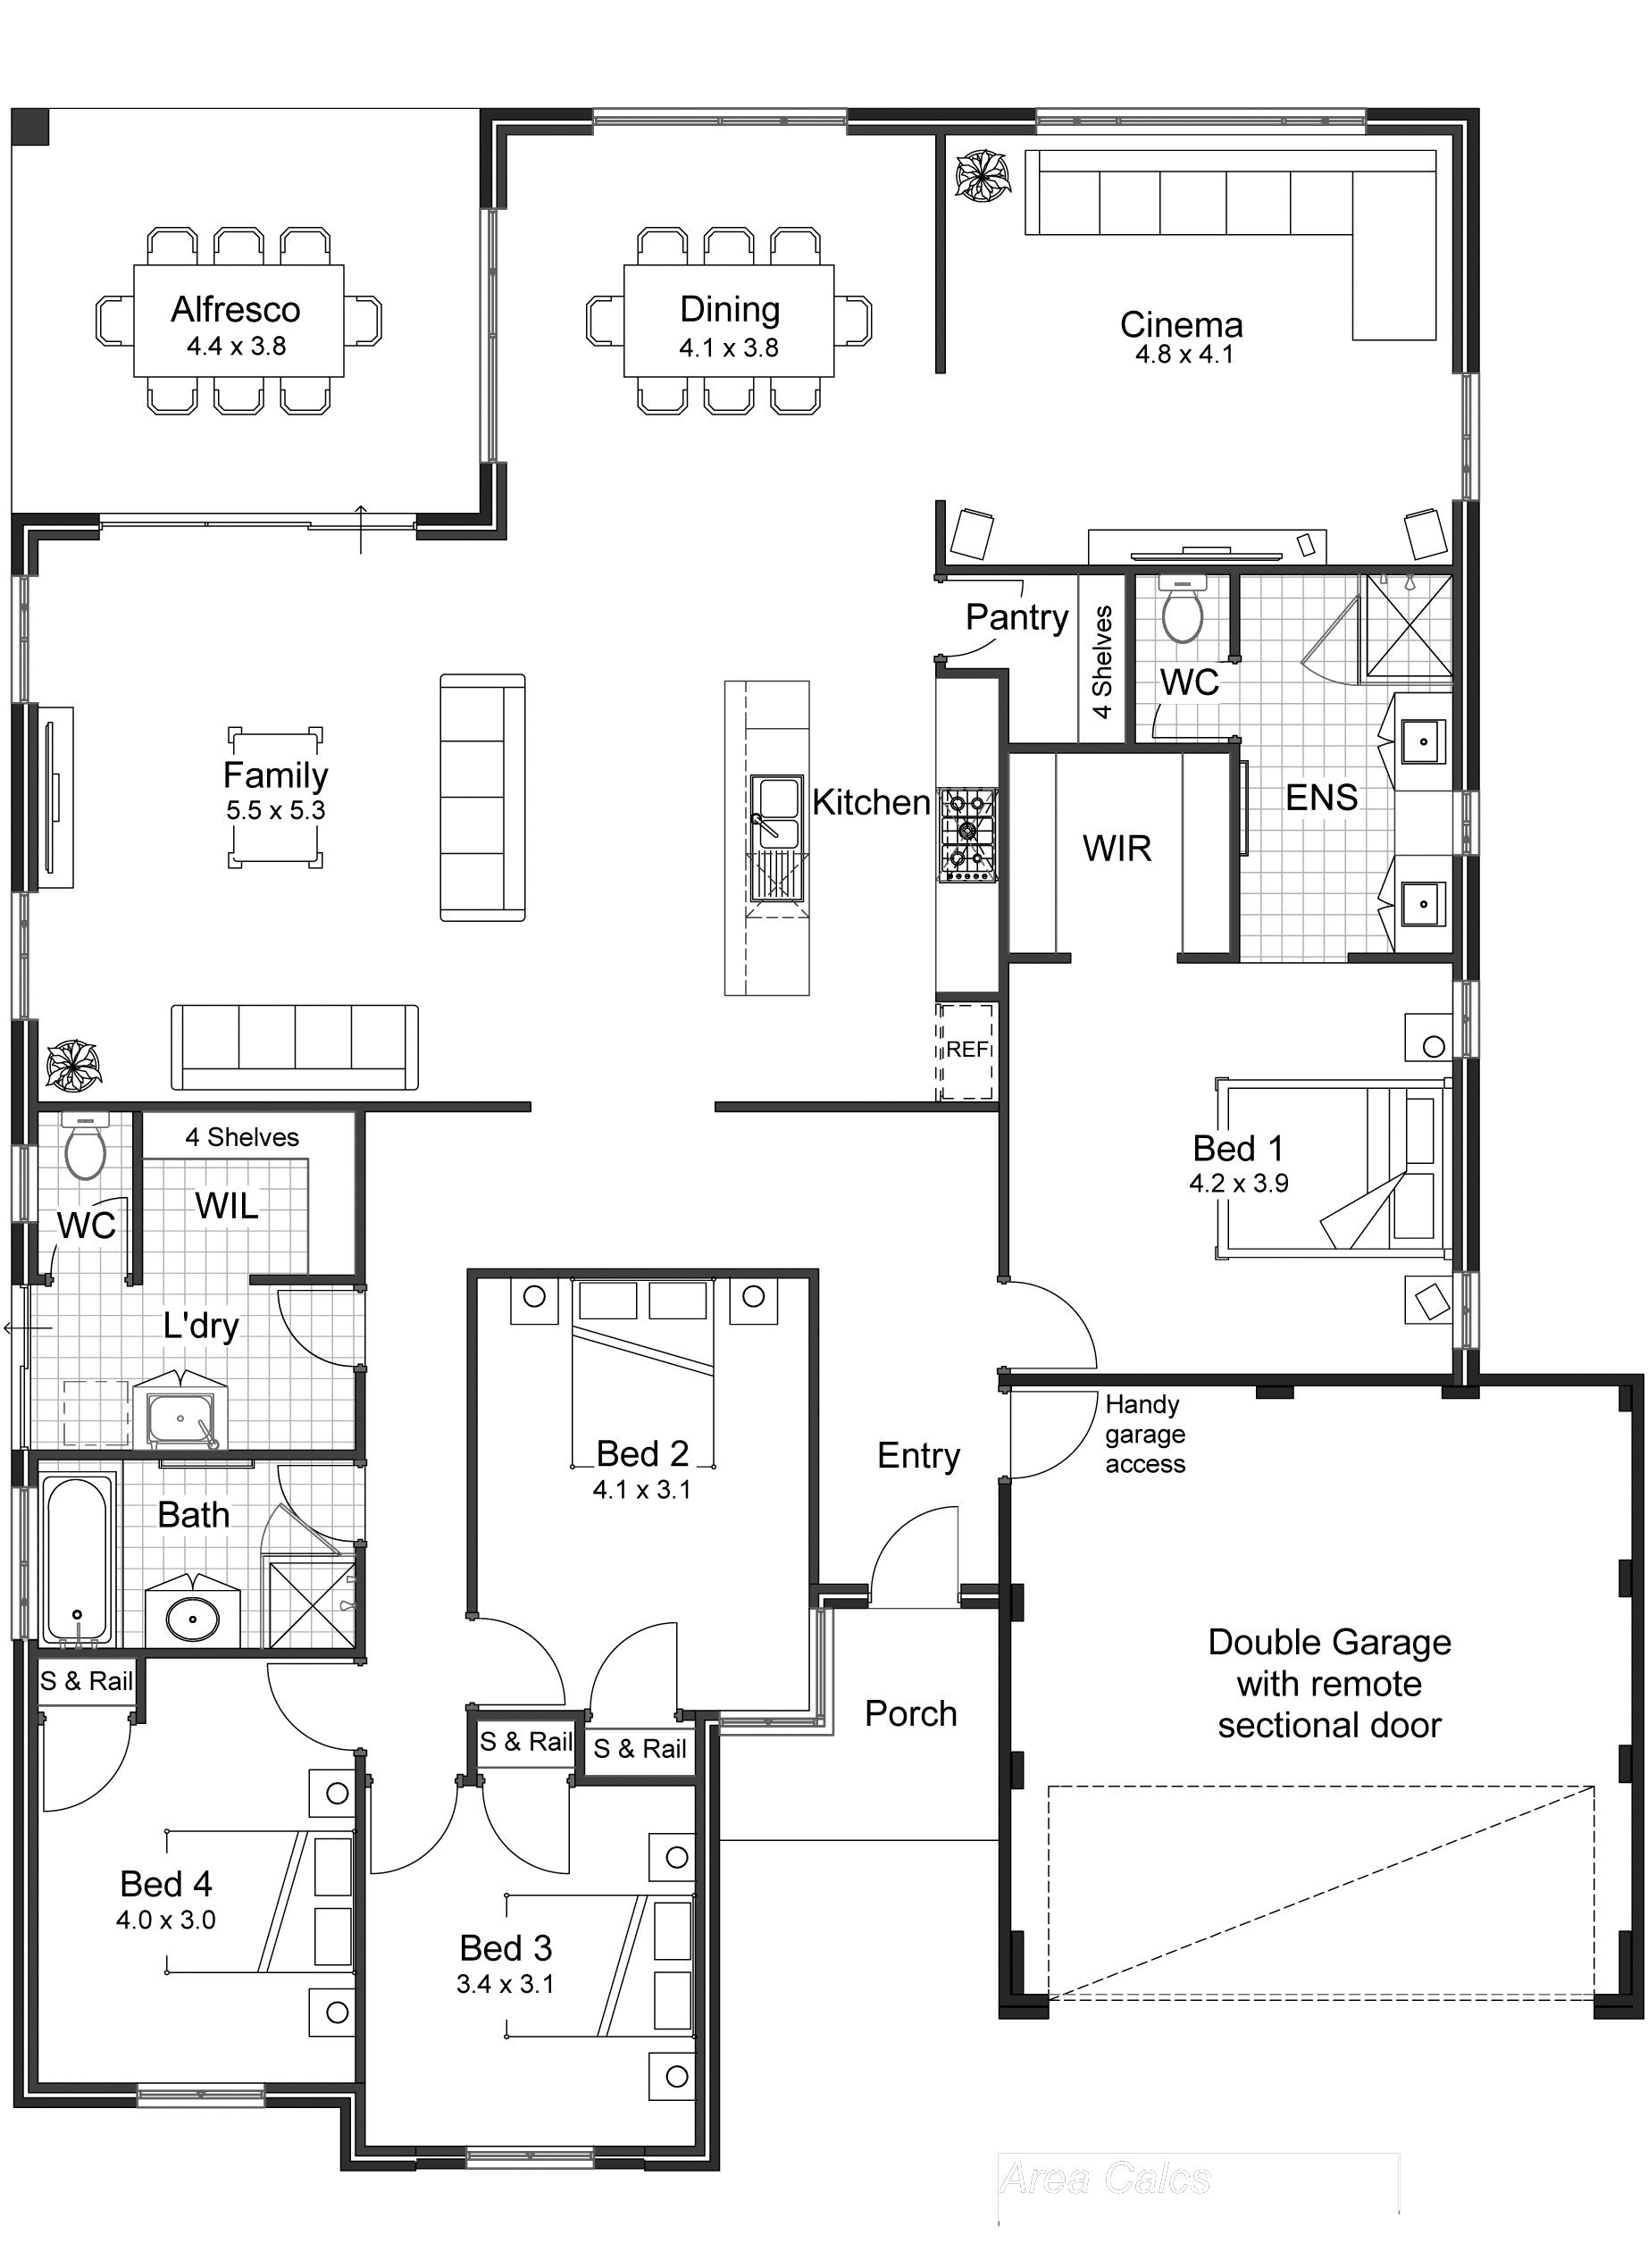 unique open floor plans open plan living the sinatra is an innovative floor plan packed with irenes board pinterest open floor plans open